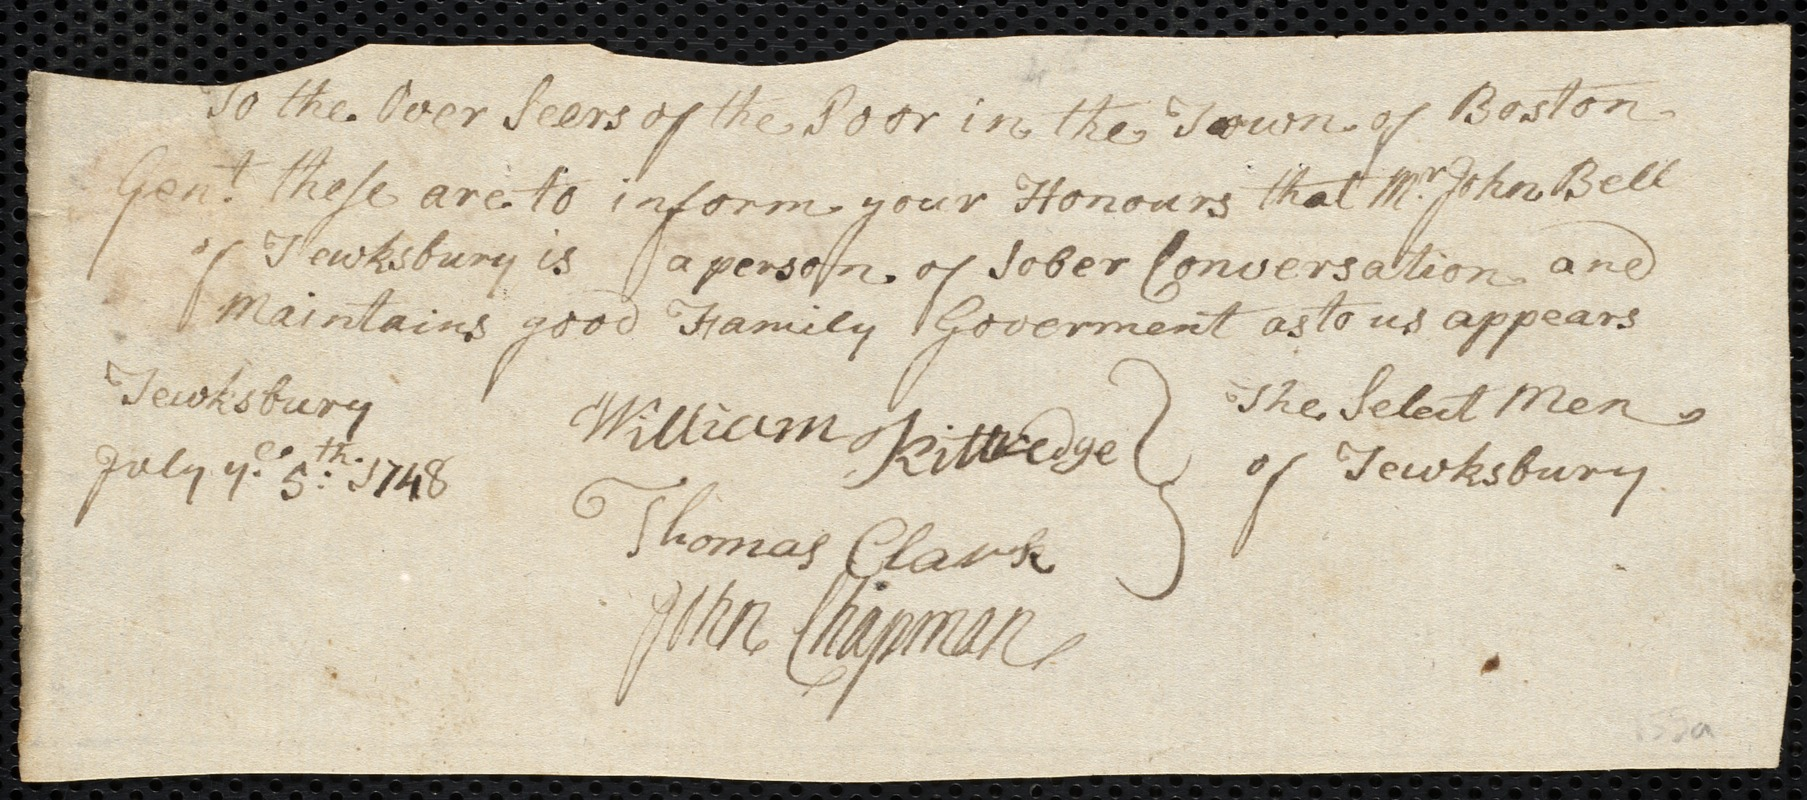 Document of indenture: Servant: Caswell, Richard. Master: Bell, John. Town of Master: Tewksbury. Selectmen of the town of Tewksbury autograph document signed to the Overseers of the Poor of Boston: Endorsement Certificate for John Bell.